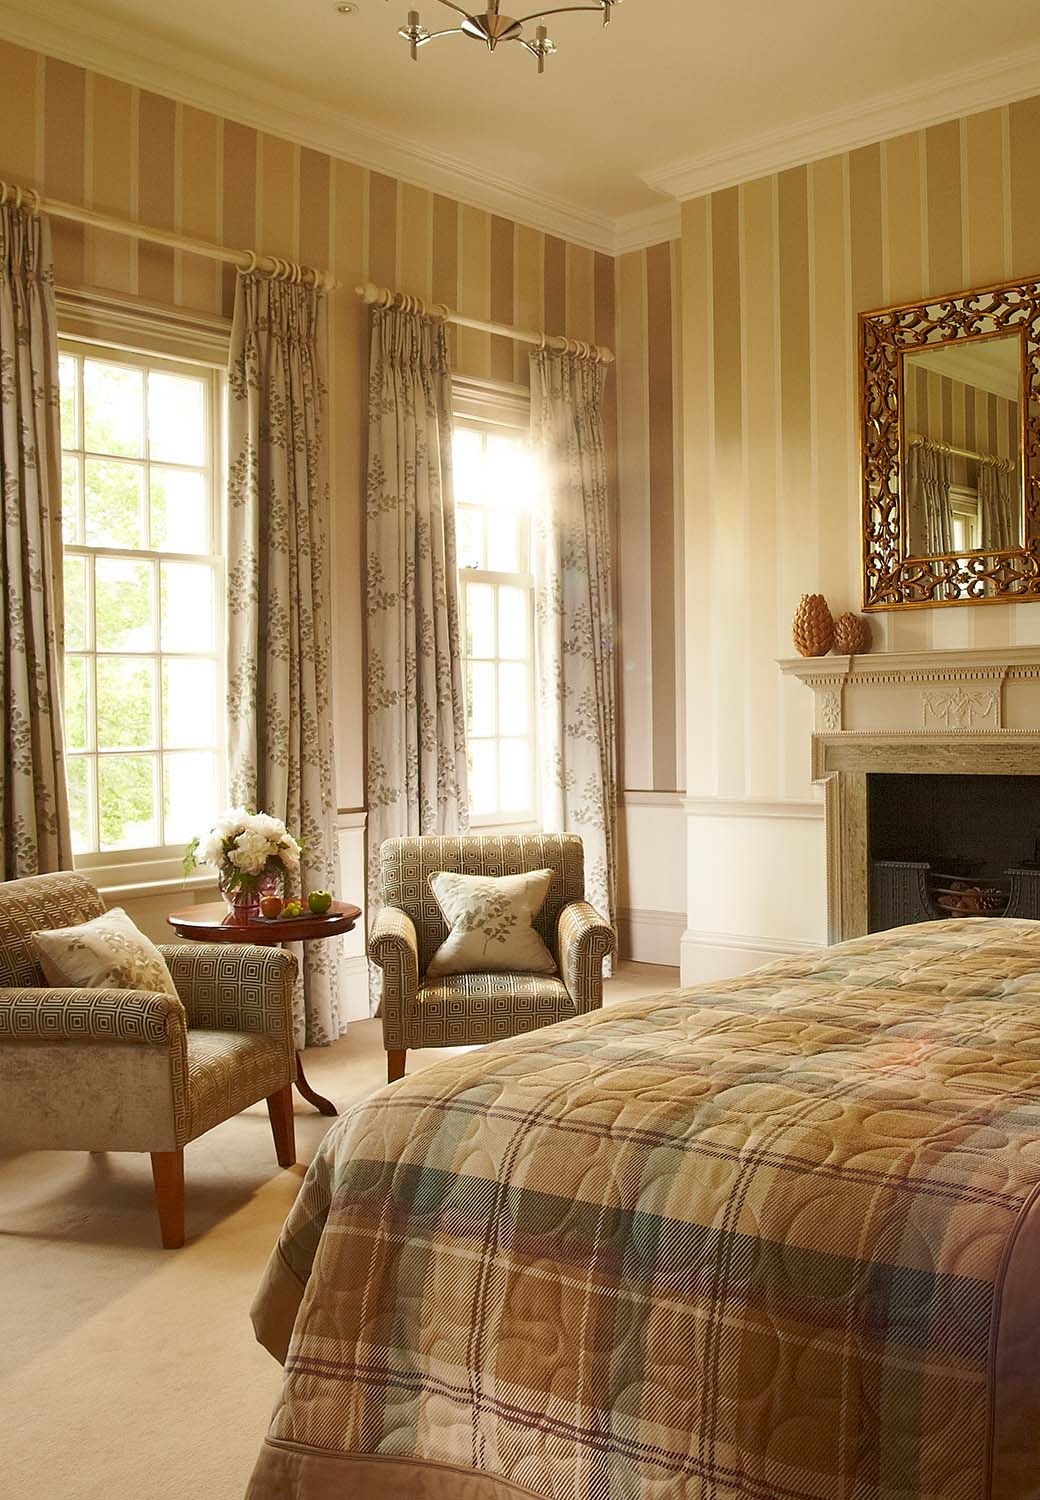 Feature Suite at Brockencote Hall Hotel